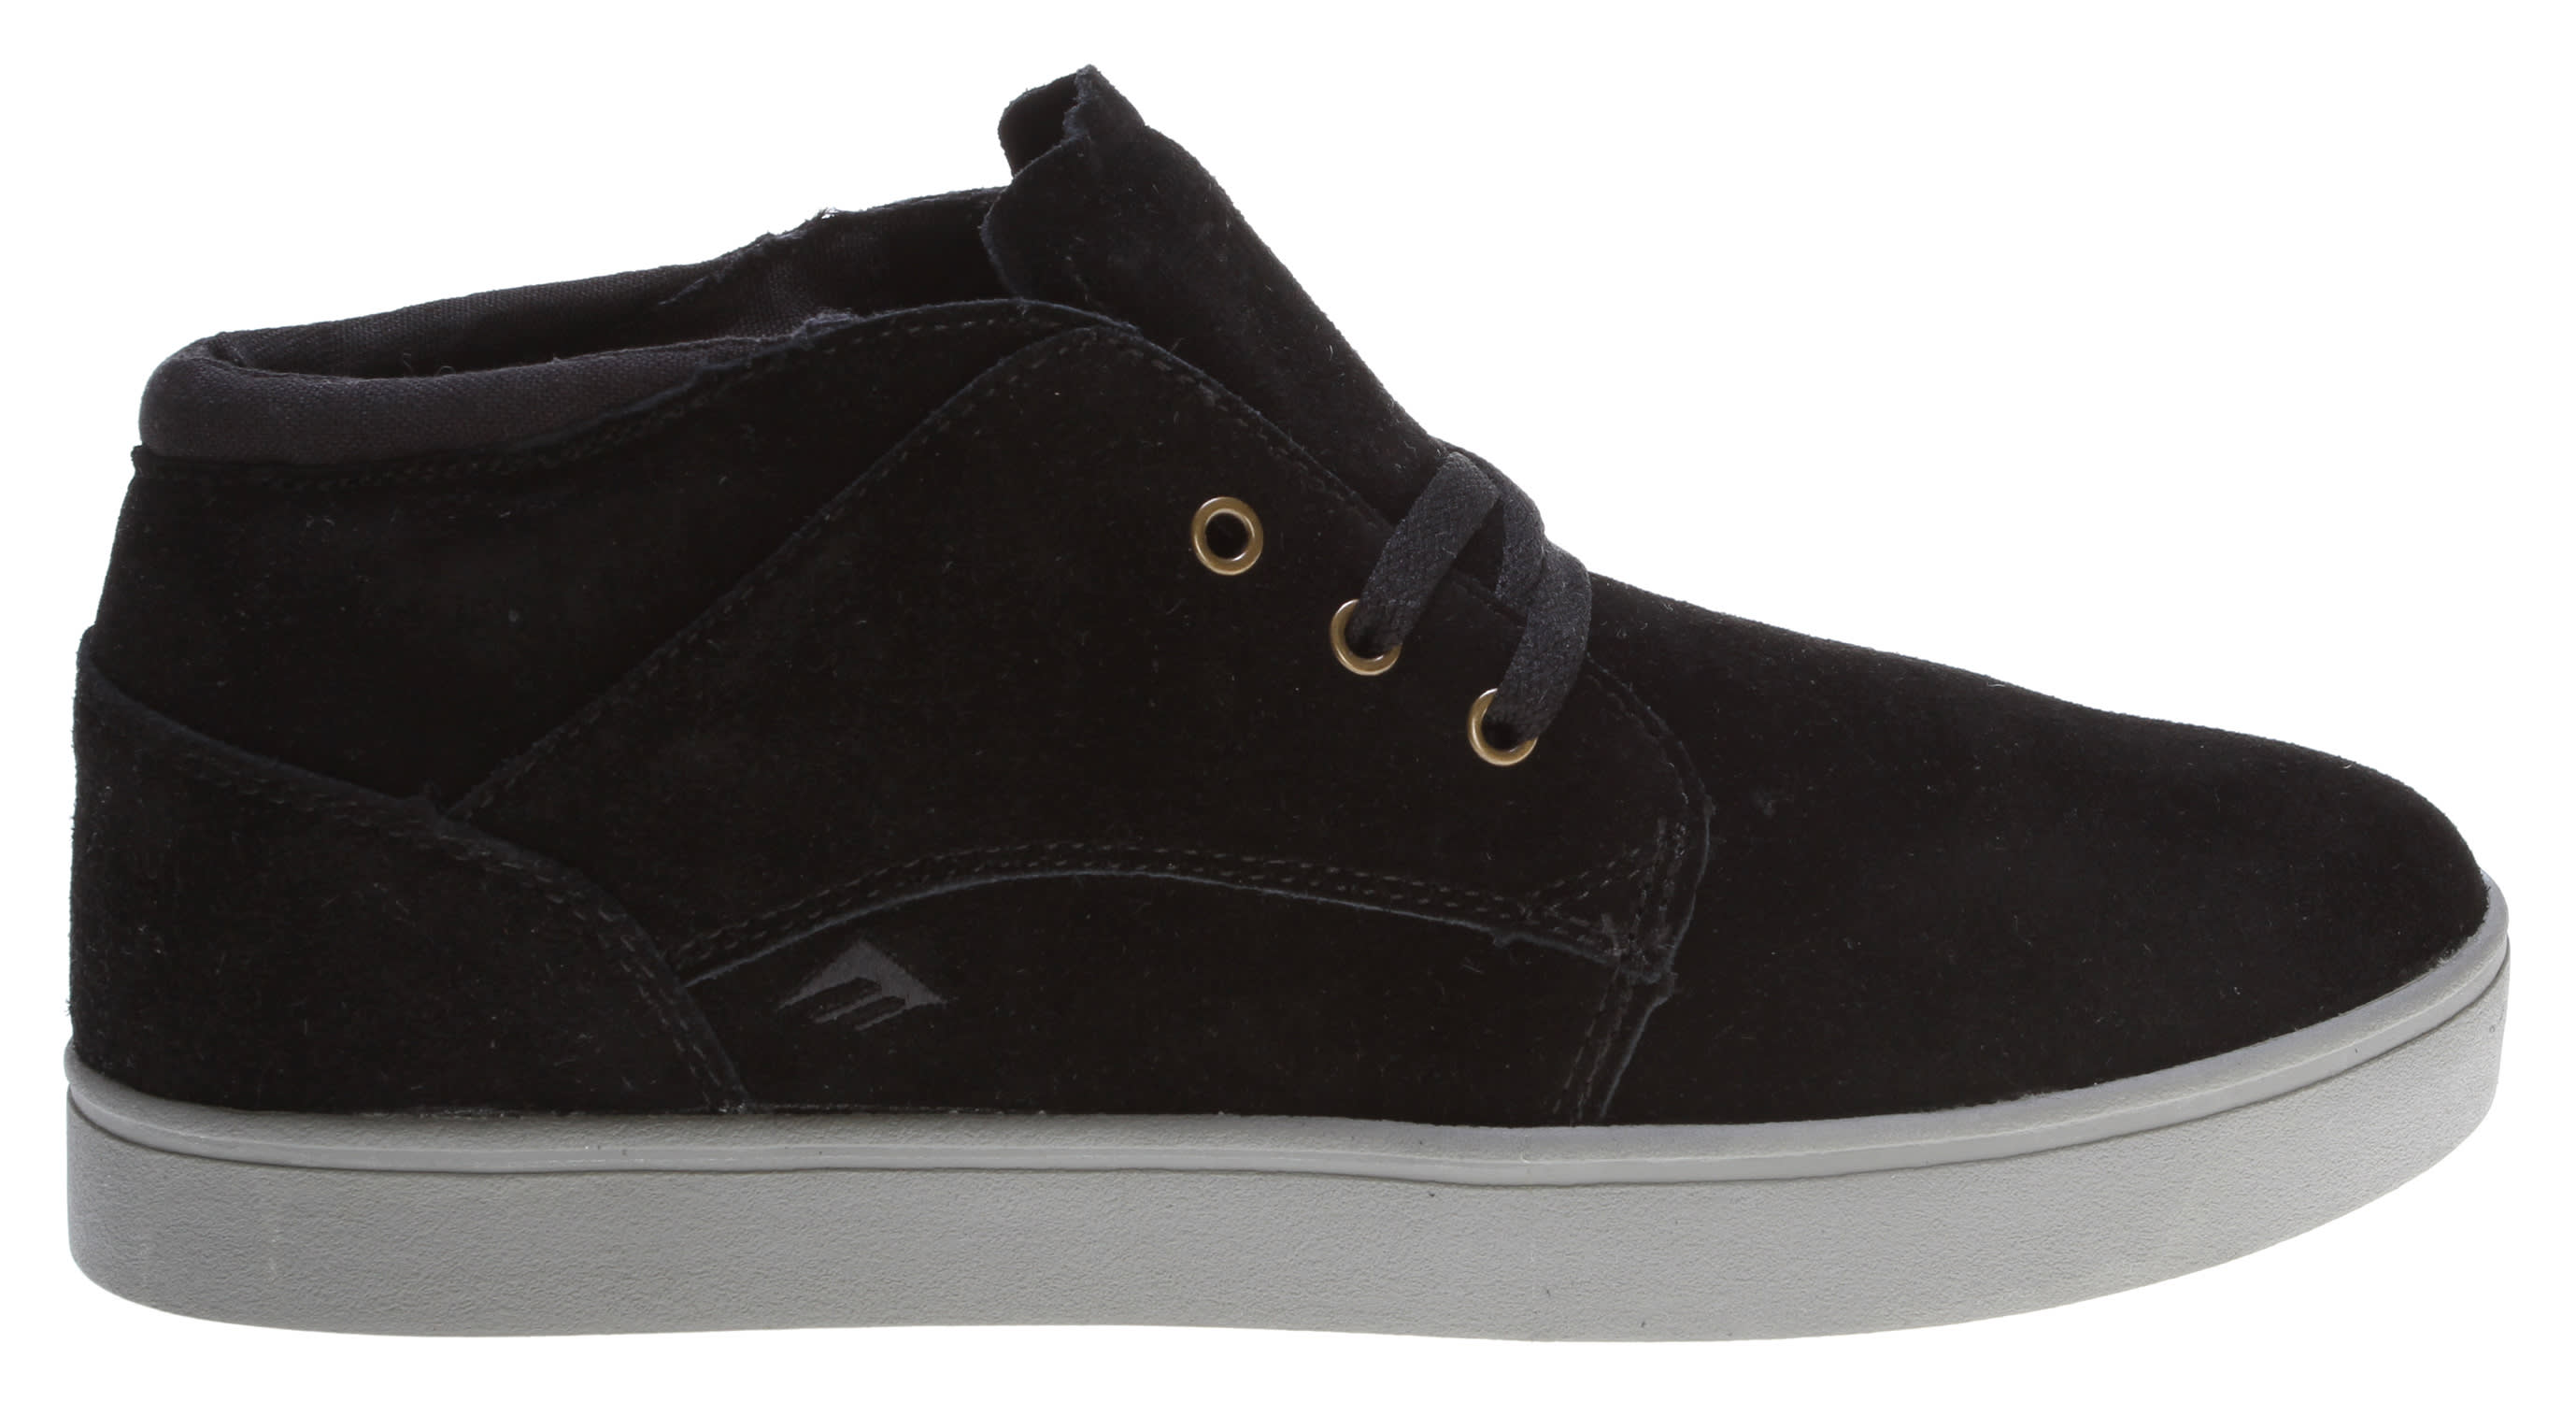 Shop for Emerica The Situation Skate Shoes Black/Grey - Men's